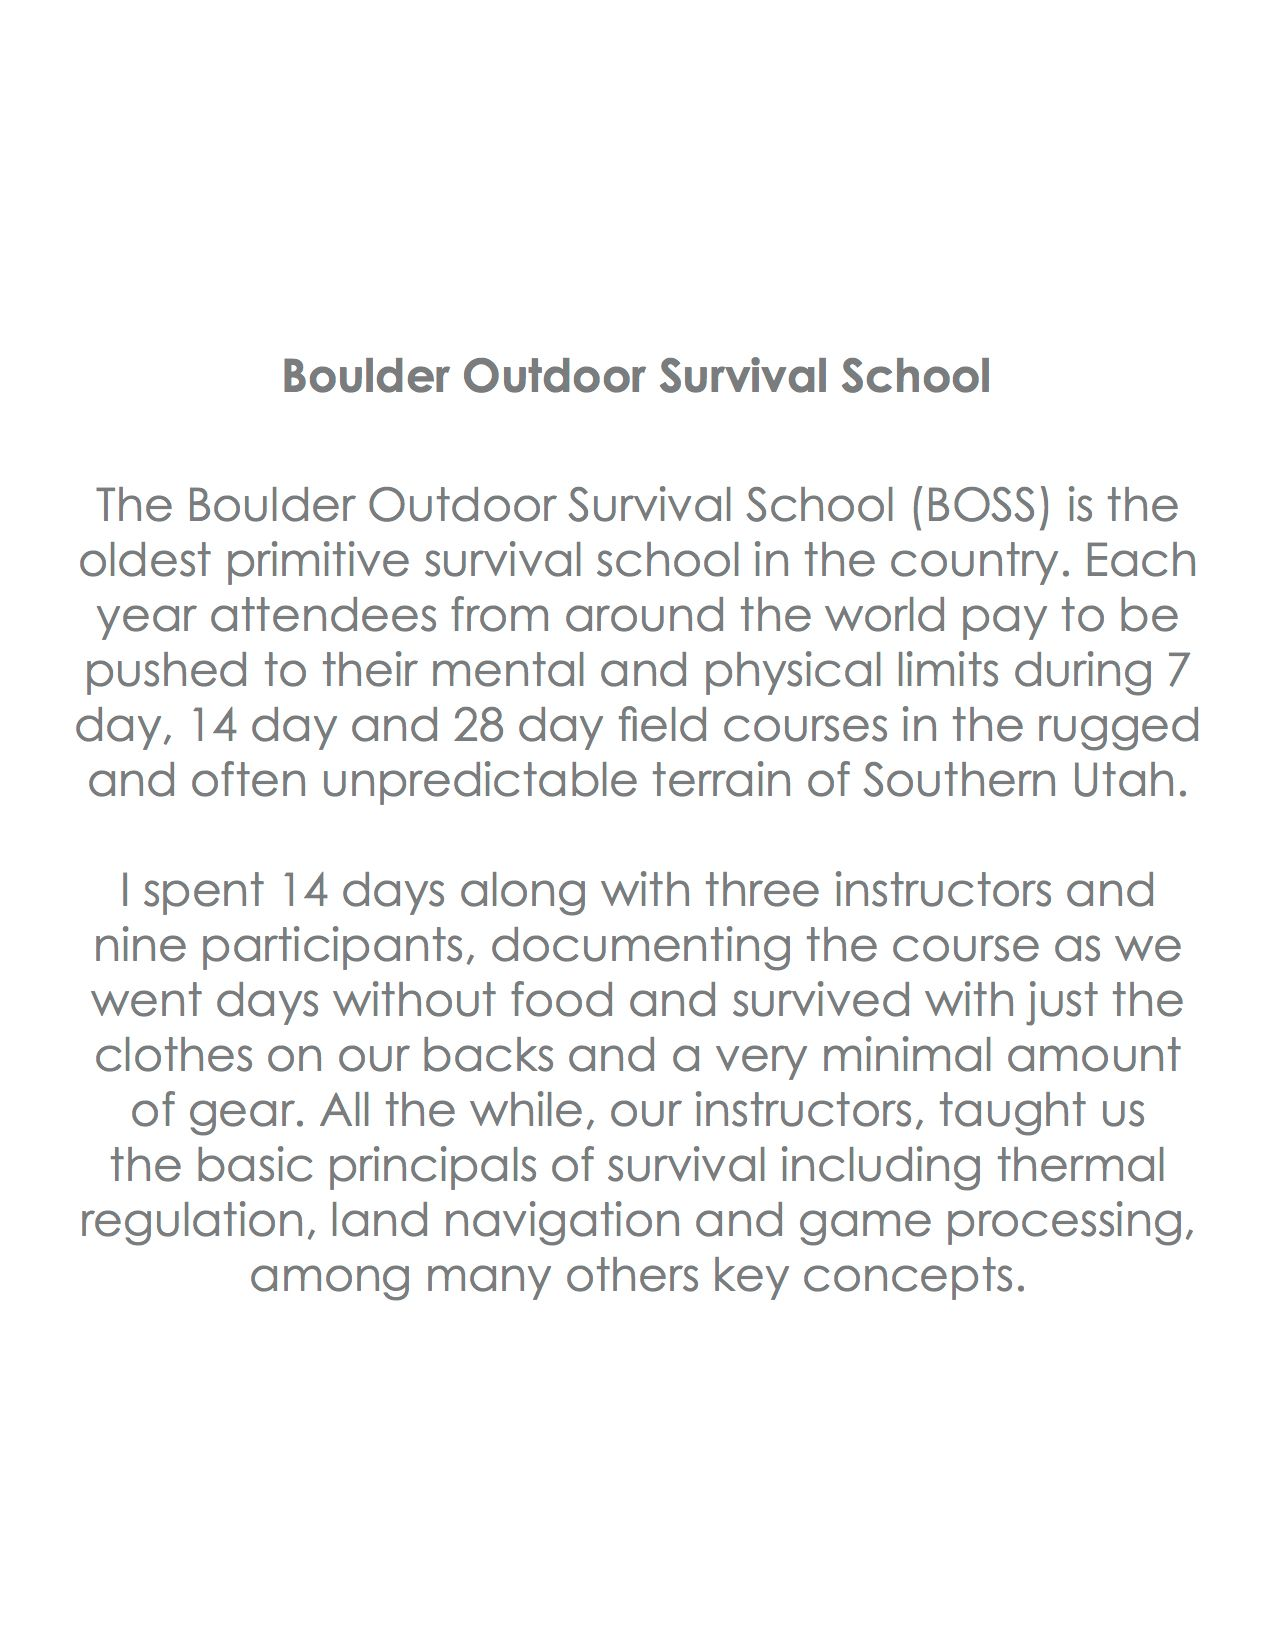 10_boulder_outdoor_survival_school.jpg